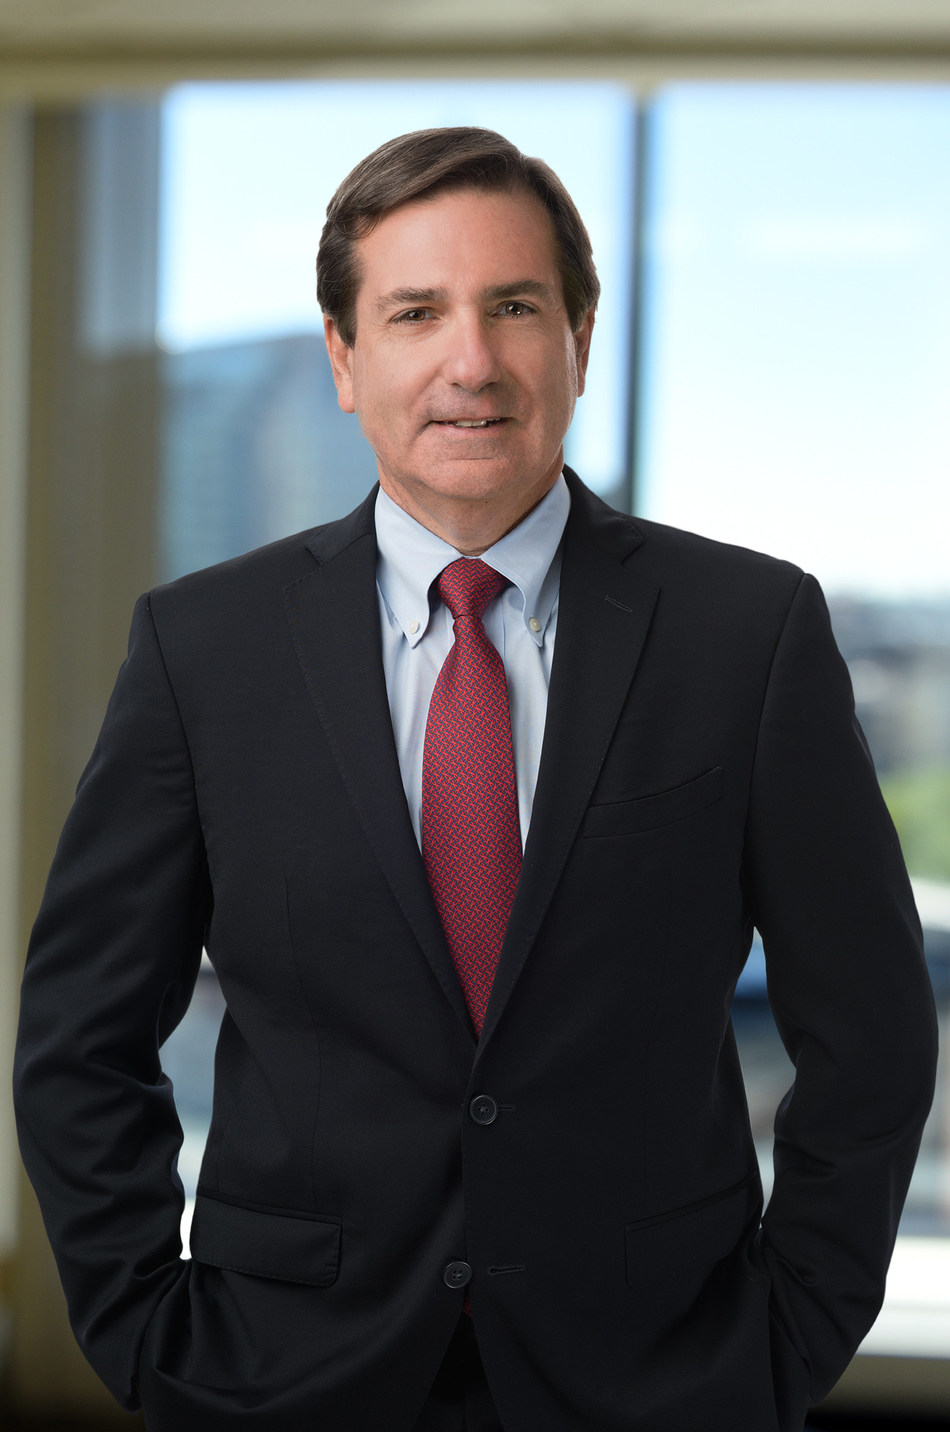 Burns & Levinson Managing Partner David Rosenblatt has been named to the Board of Directors of Lawyers Concerned for Lawyers.